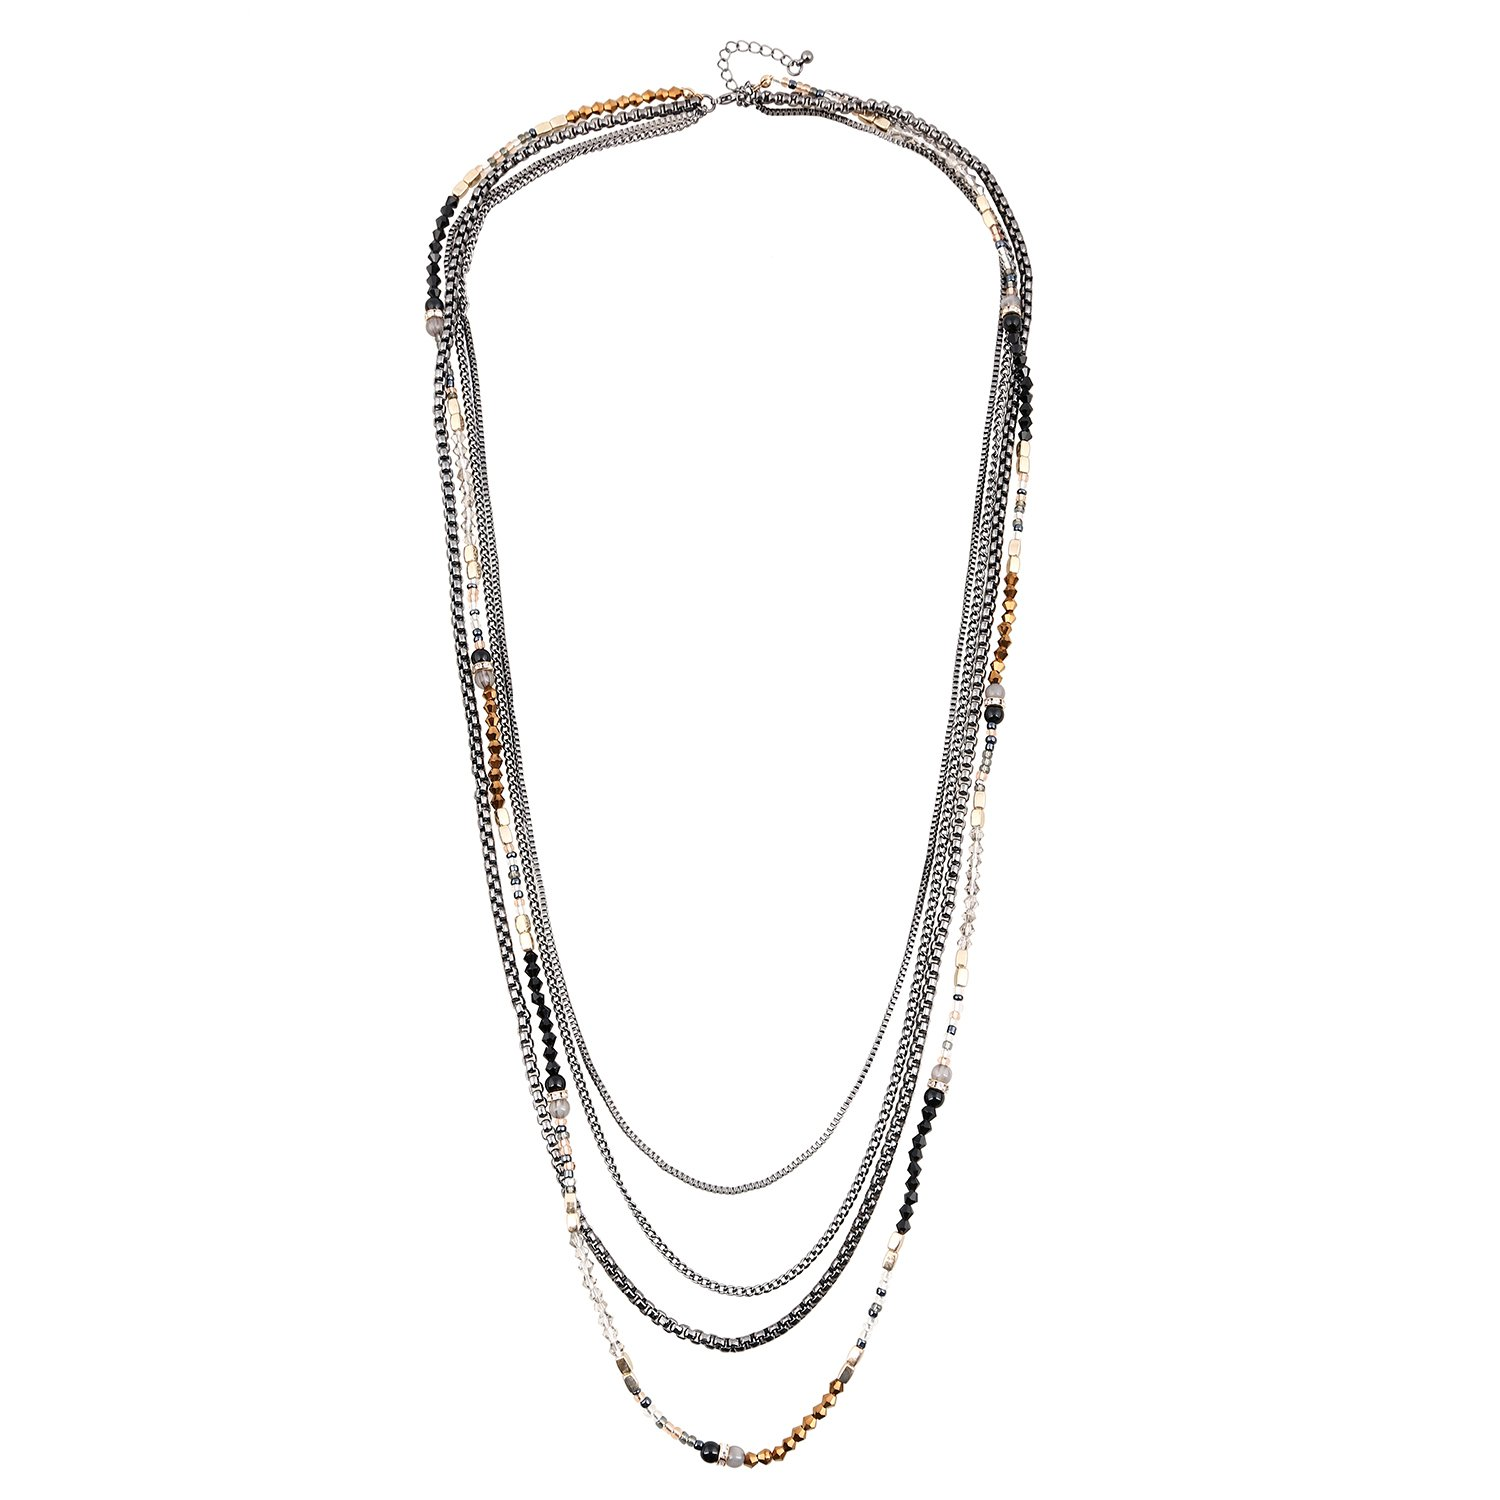 D EXCEED Jewelry Womens Multi Strand Necklace Glass Beaded Sweater Neck Chain Necklace Hematite